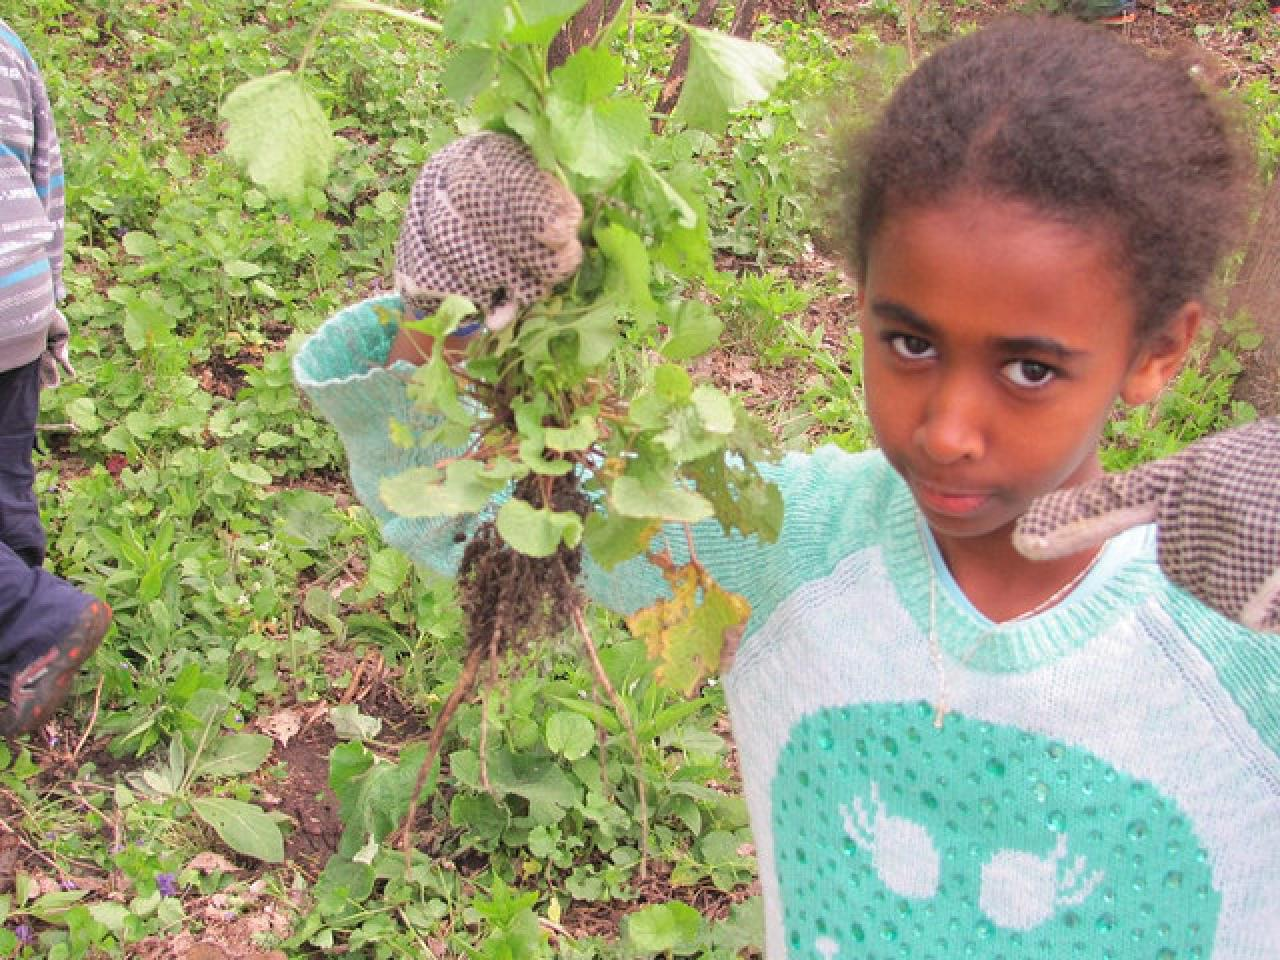 Young volunteer with pulled garlic mustard